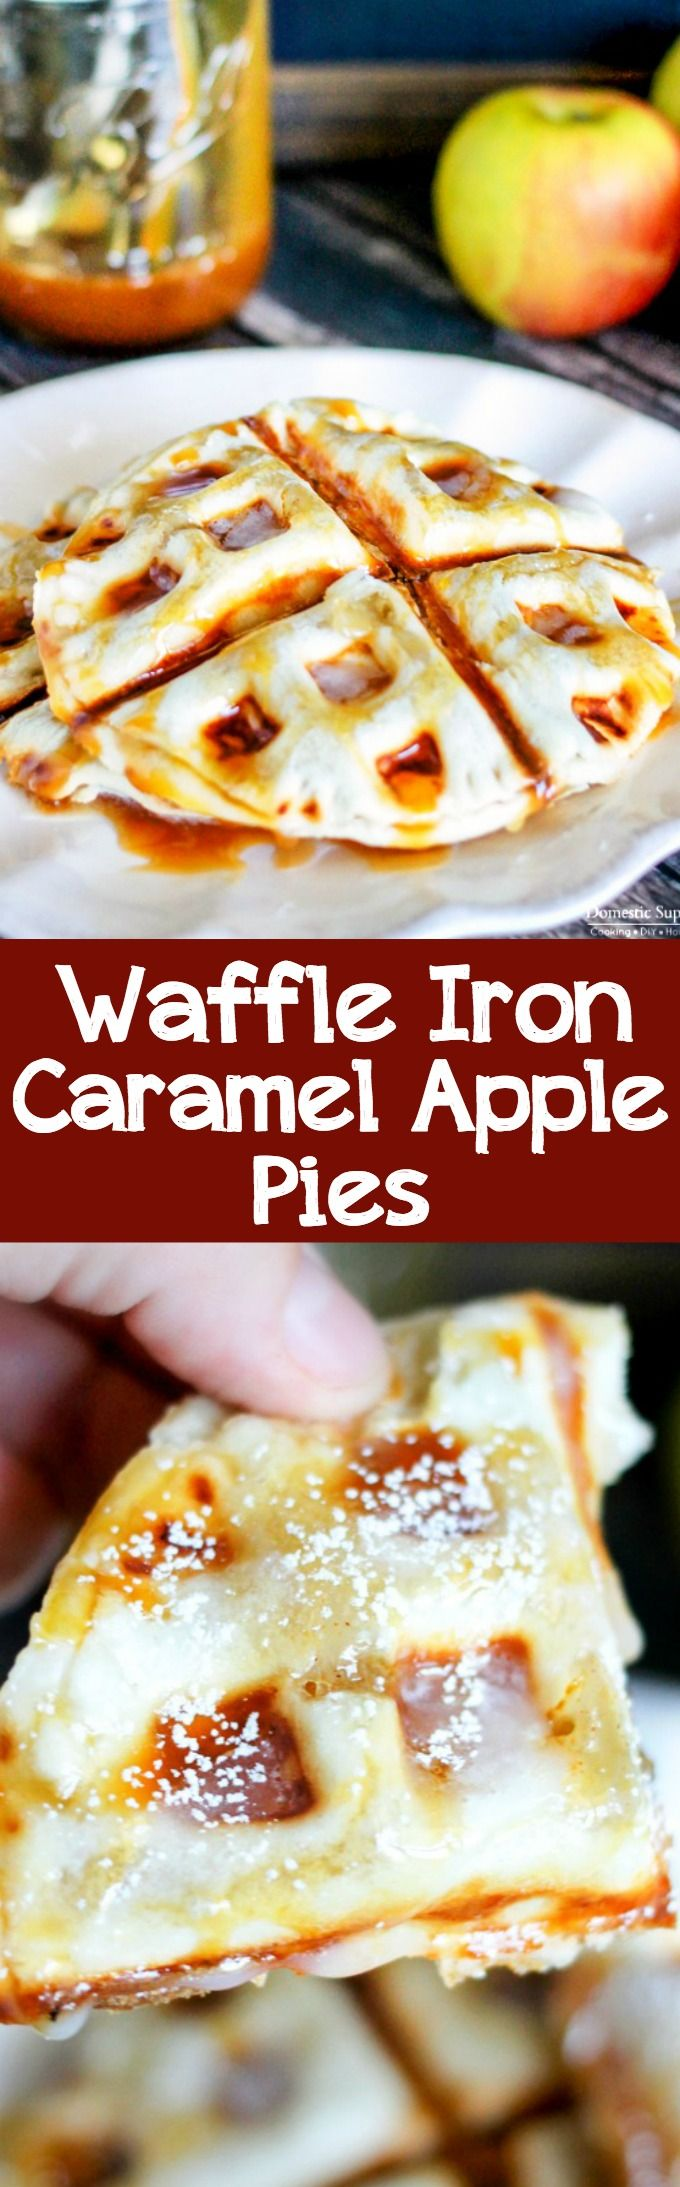 Waffle Iron Caramel Apple Pies are full of apples and caramel sandwiched between a flakey pie crust! Best of all, you can make this pie in 10 minutes!